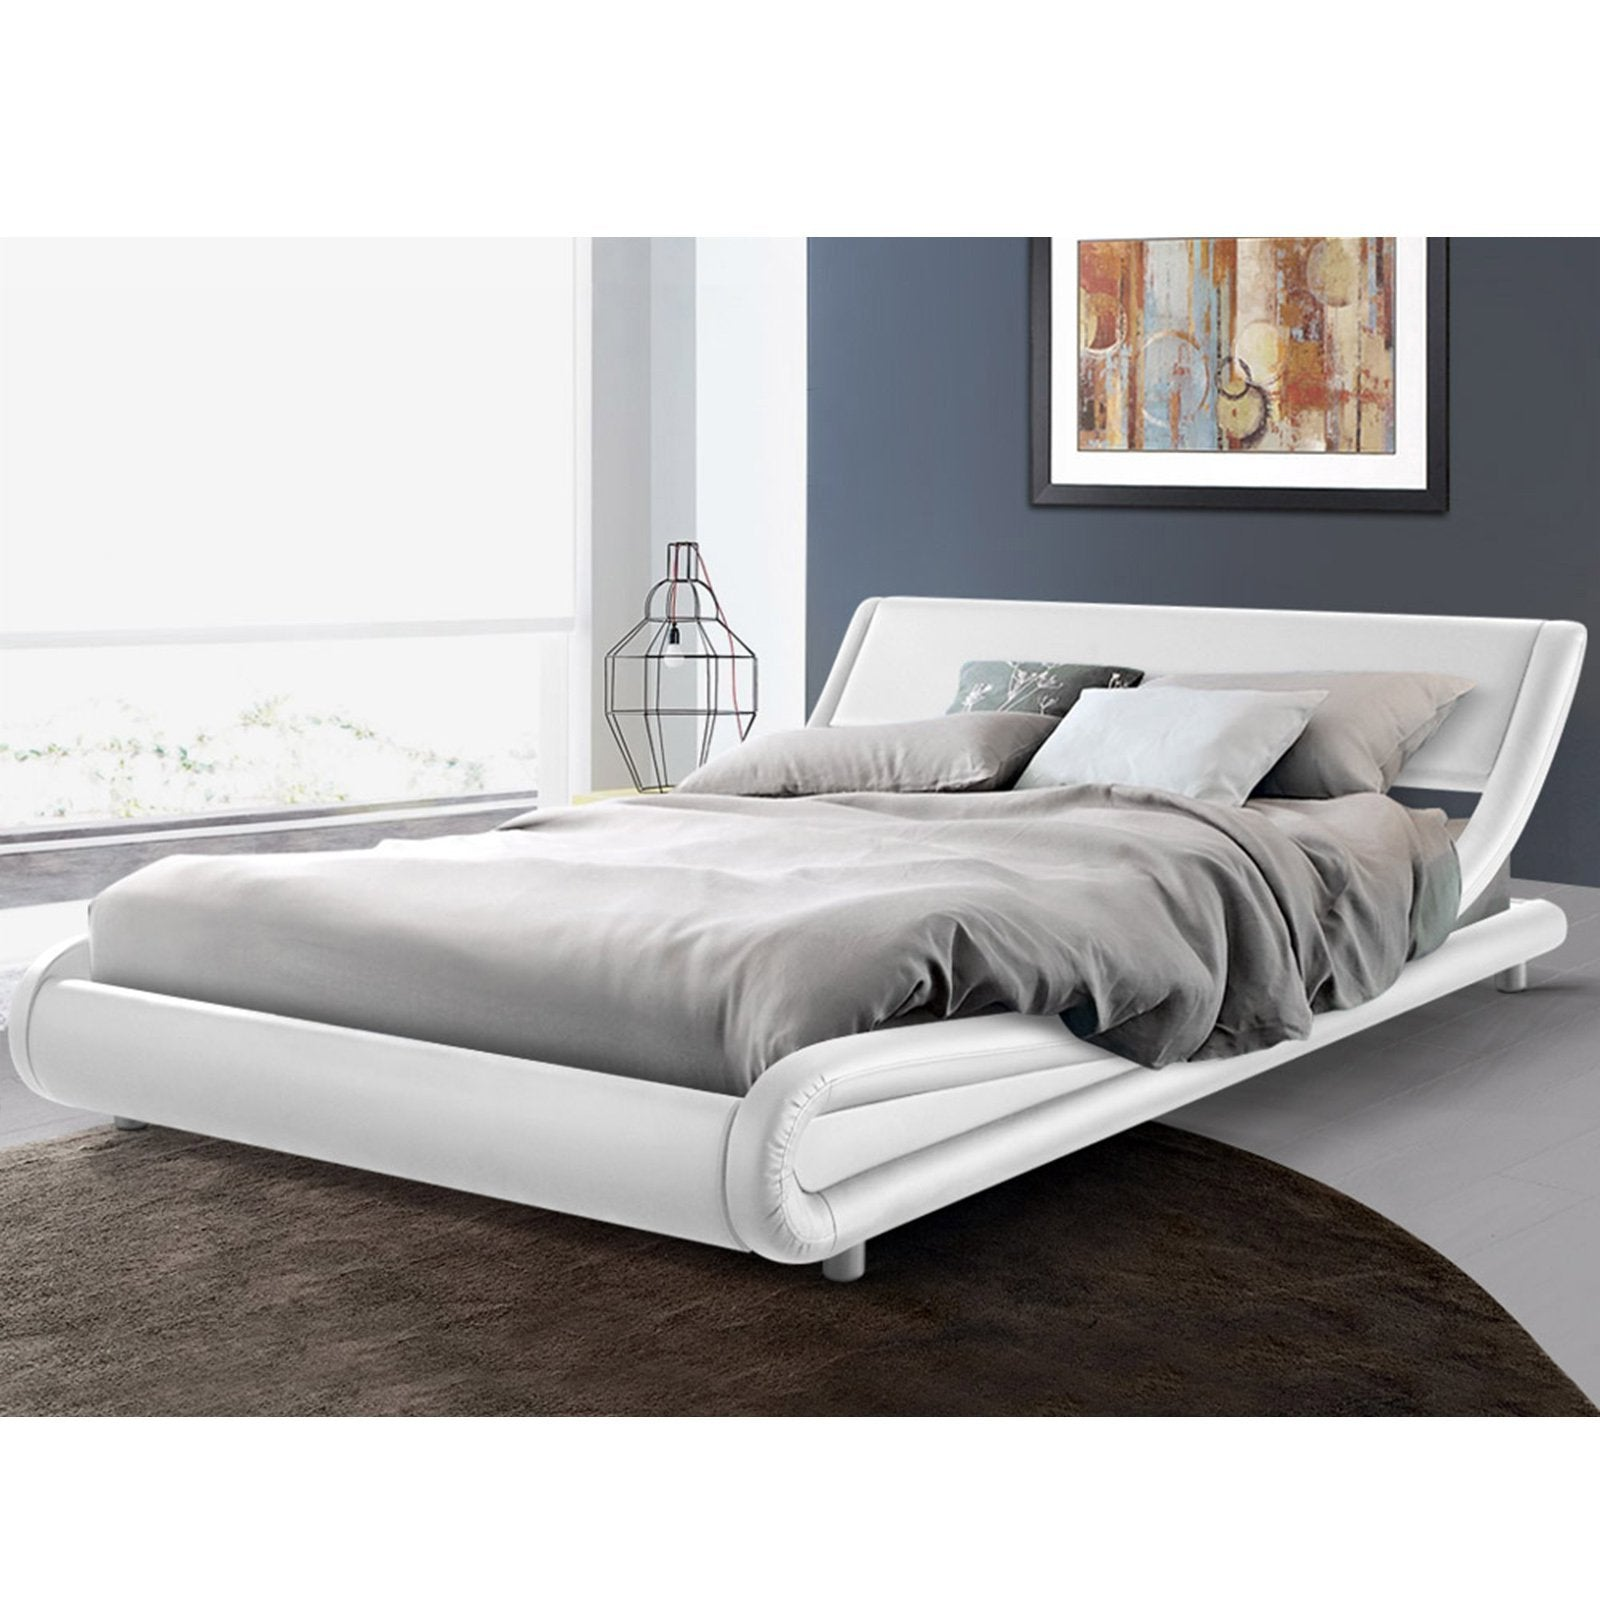 Florence White Queen Bed Frame – Interiors Domain